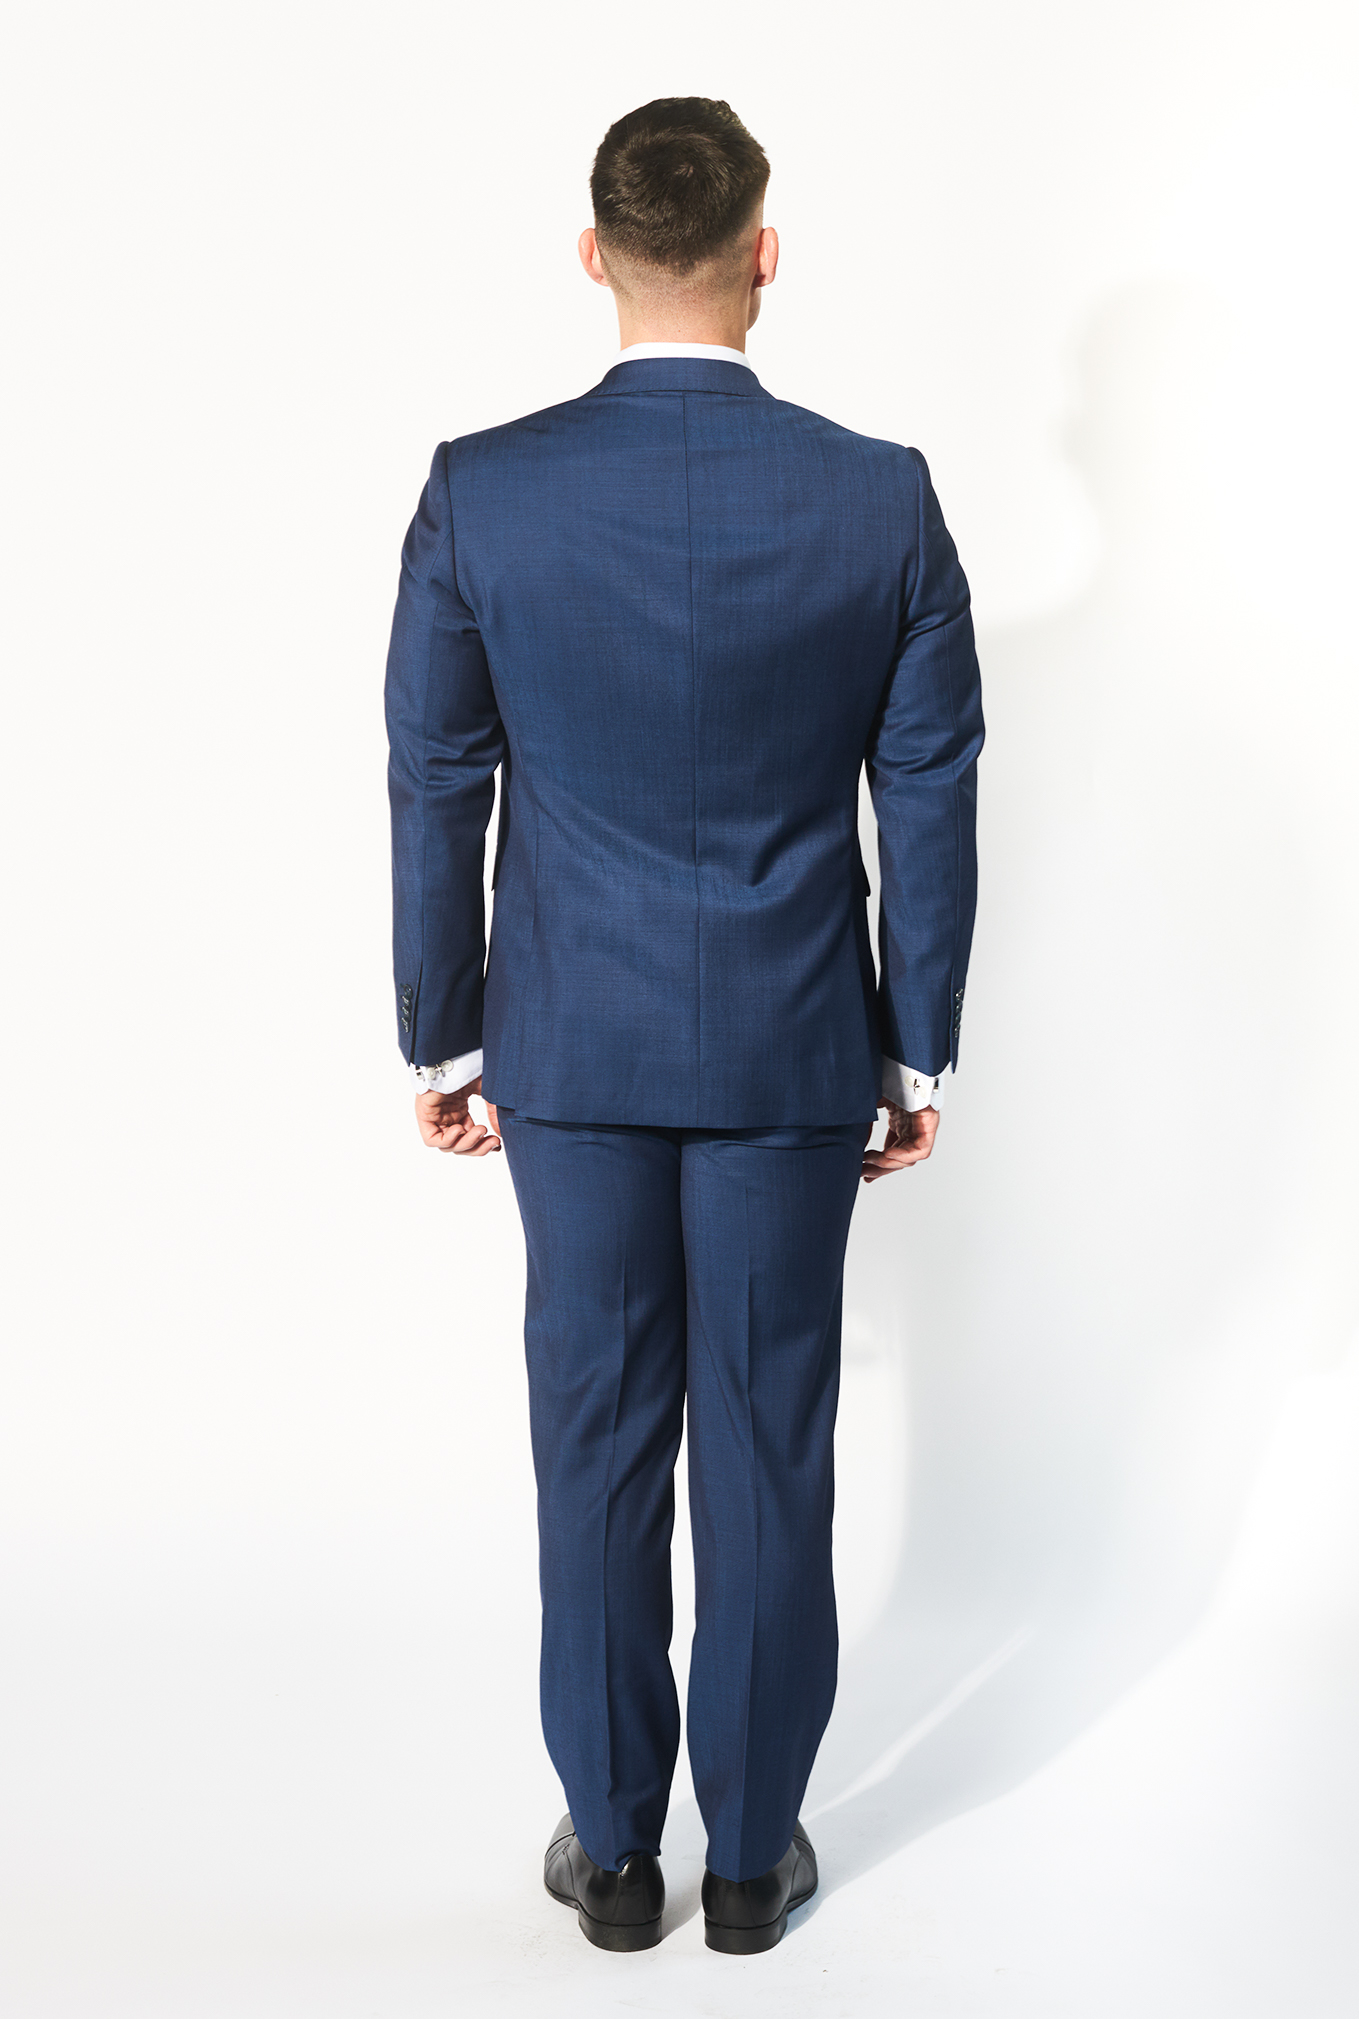 The Marine blue suit side view